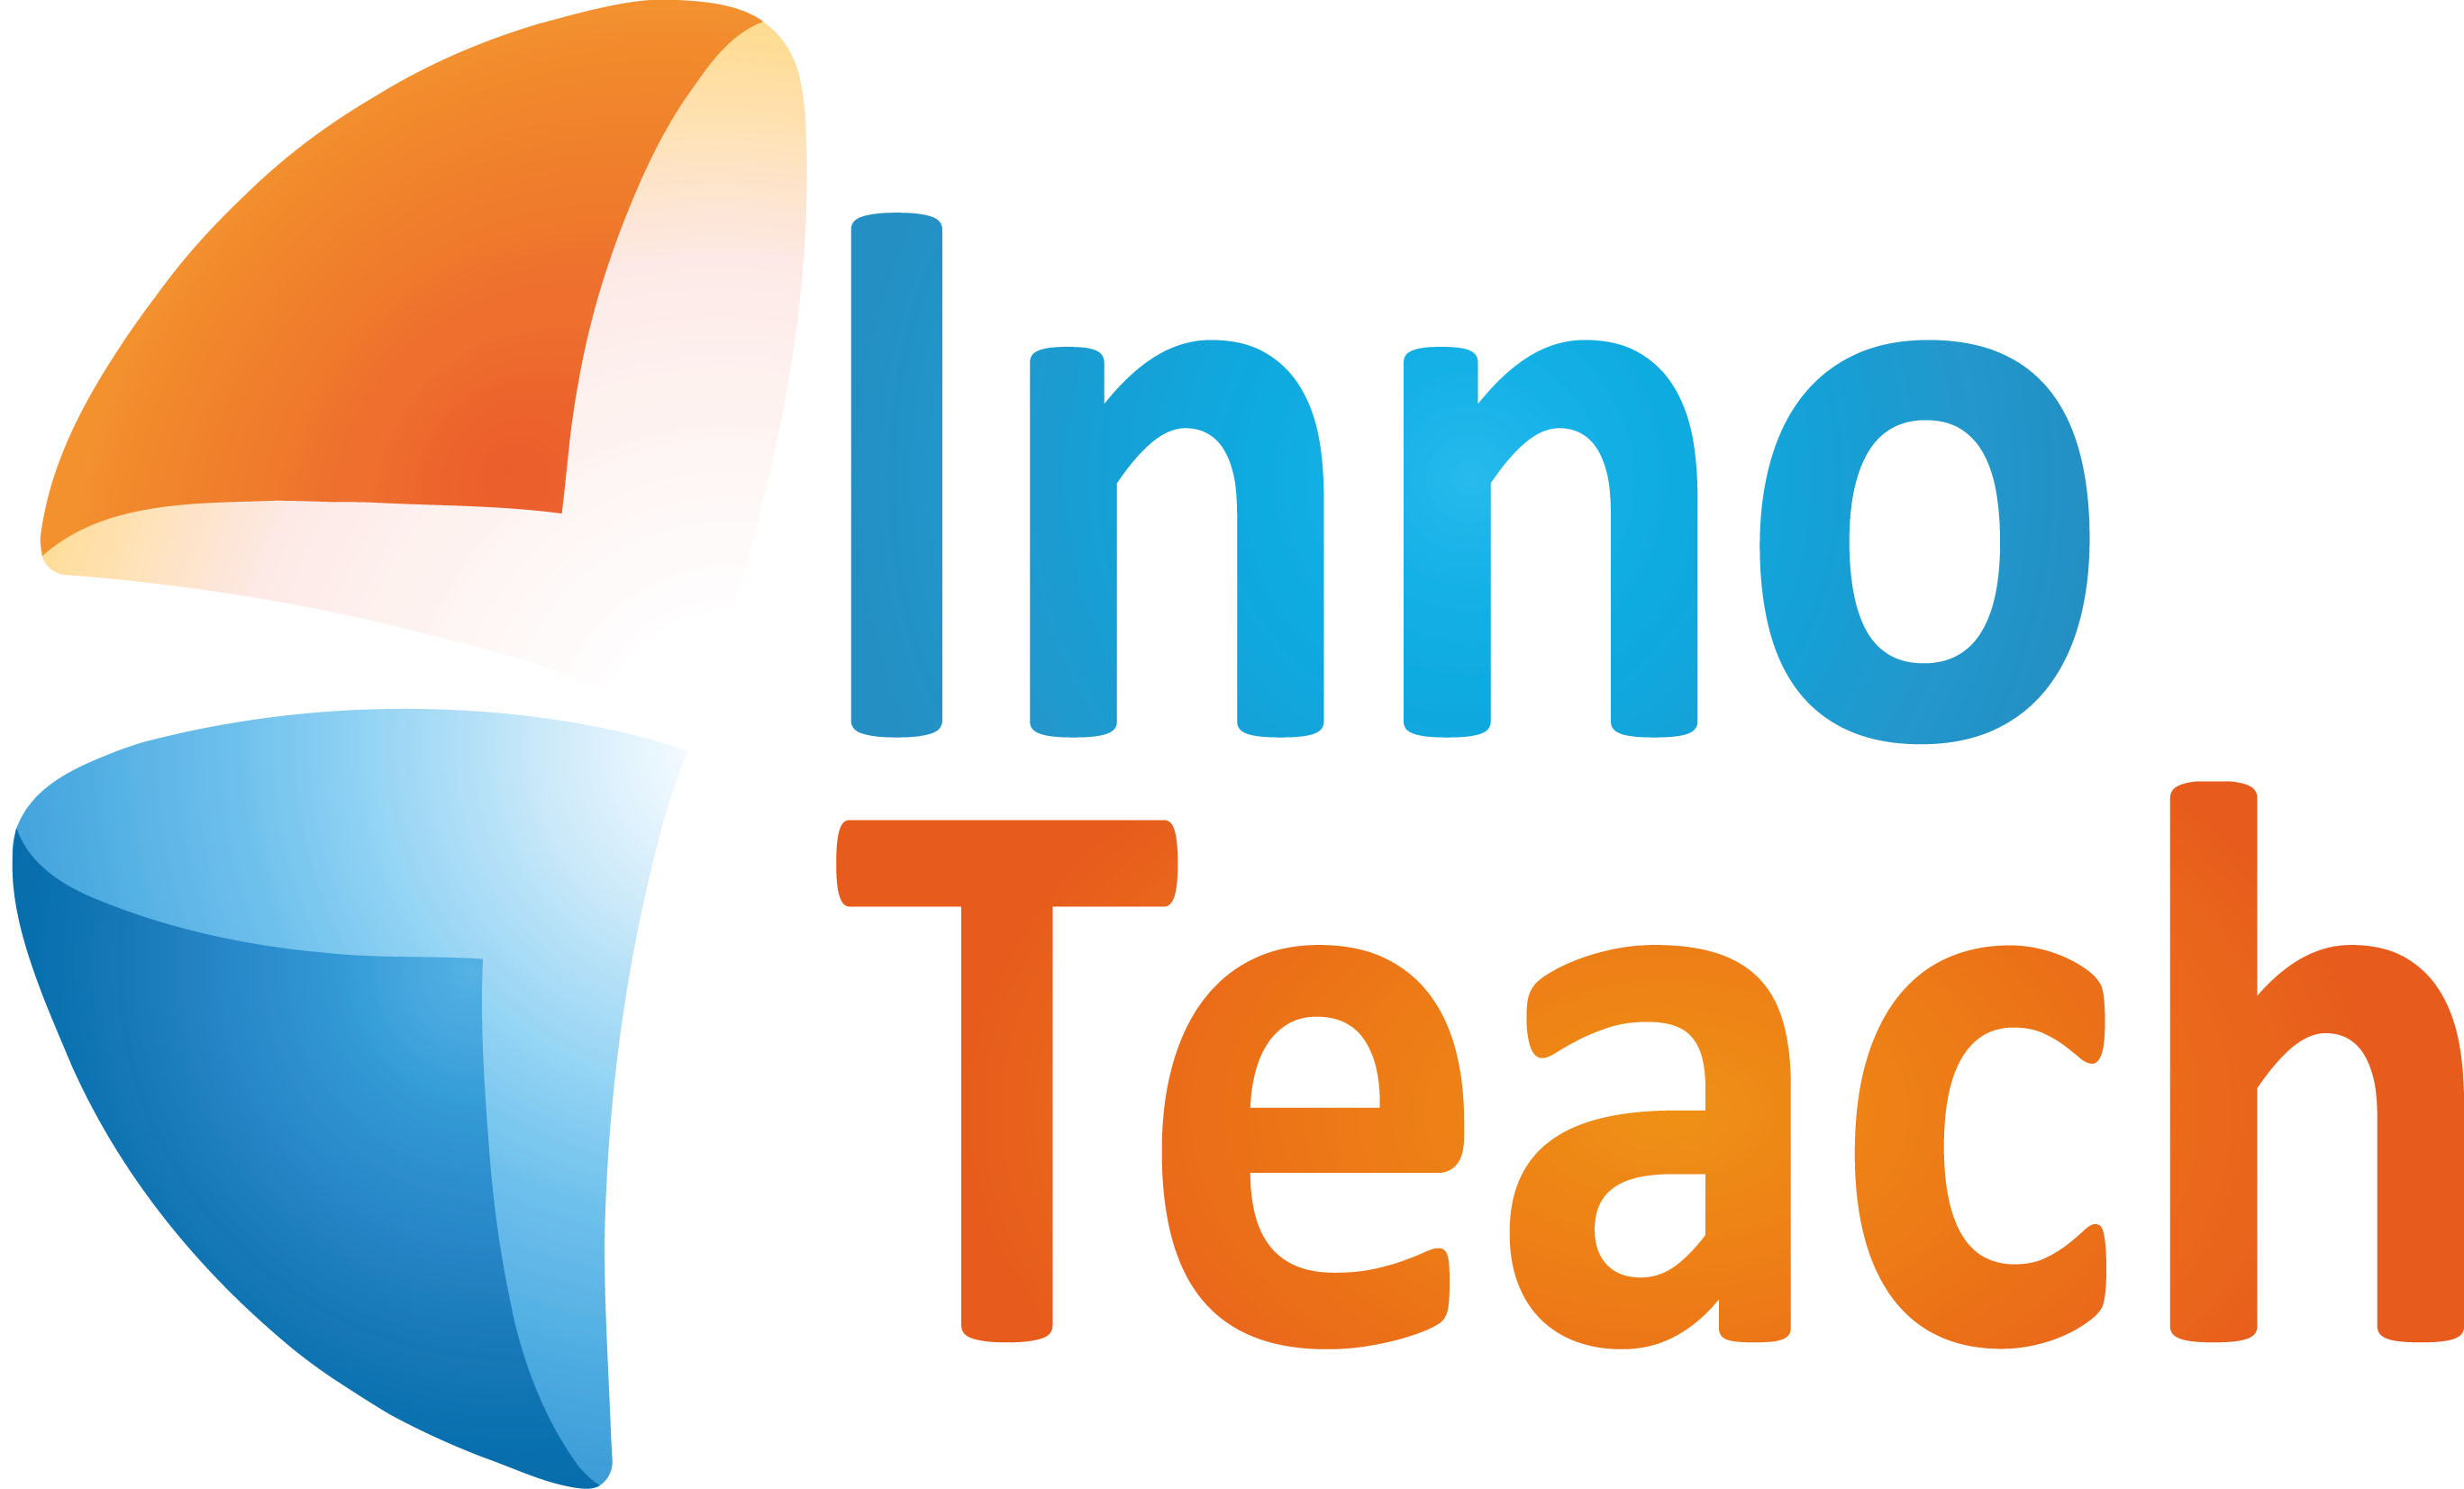 InnoTeach, Let's be Innovative! Development of Creativity, Innovation and Entrepreneurship for Primary School Teachers